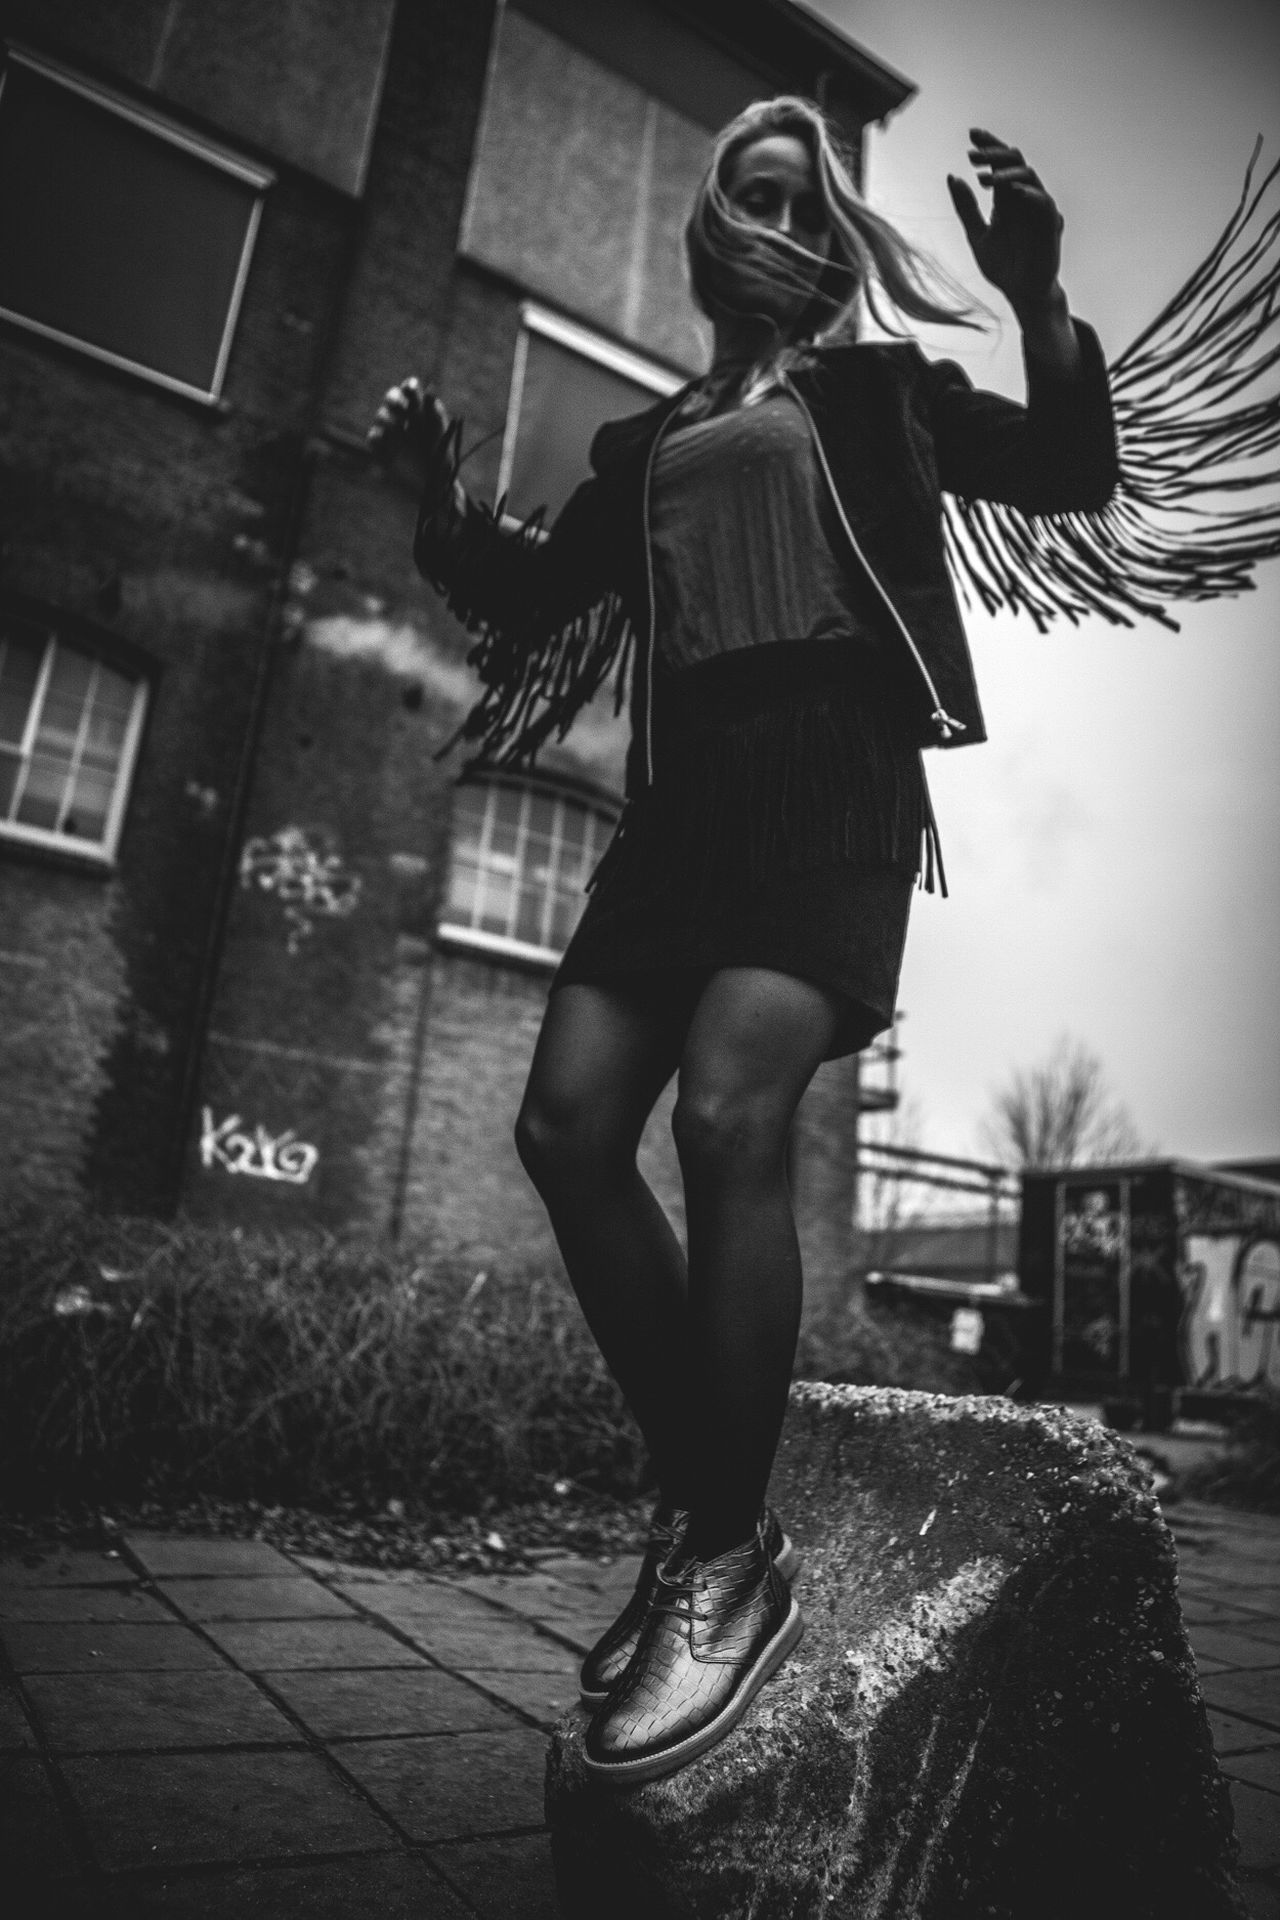 Lieblingsteil Full Length Real People Lifestyles Standing One Person Leisure Activity Young Adult Young Women Outdoors Architecture Day Leather Jacket Leather Shoes Black & White Monochrome Monochrome Photography Fashion Fashion Photography Editorial  Blond Hair WOW EyeEm Best Shots Shiny